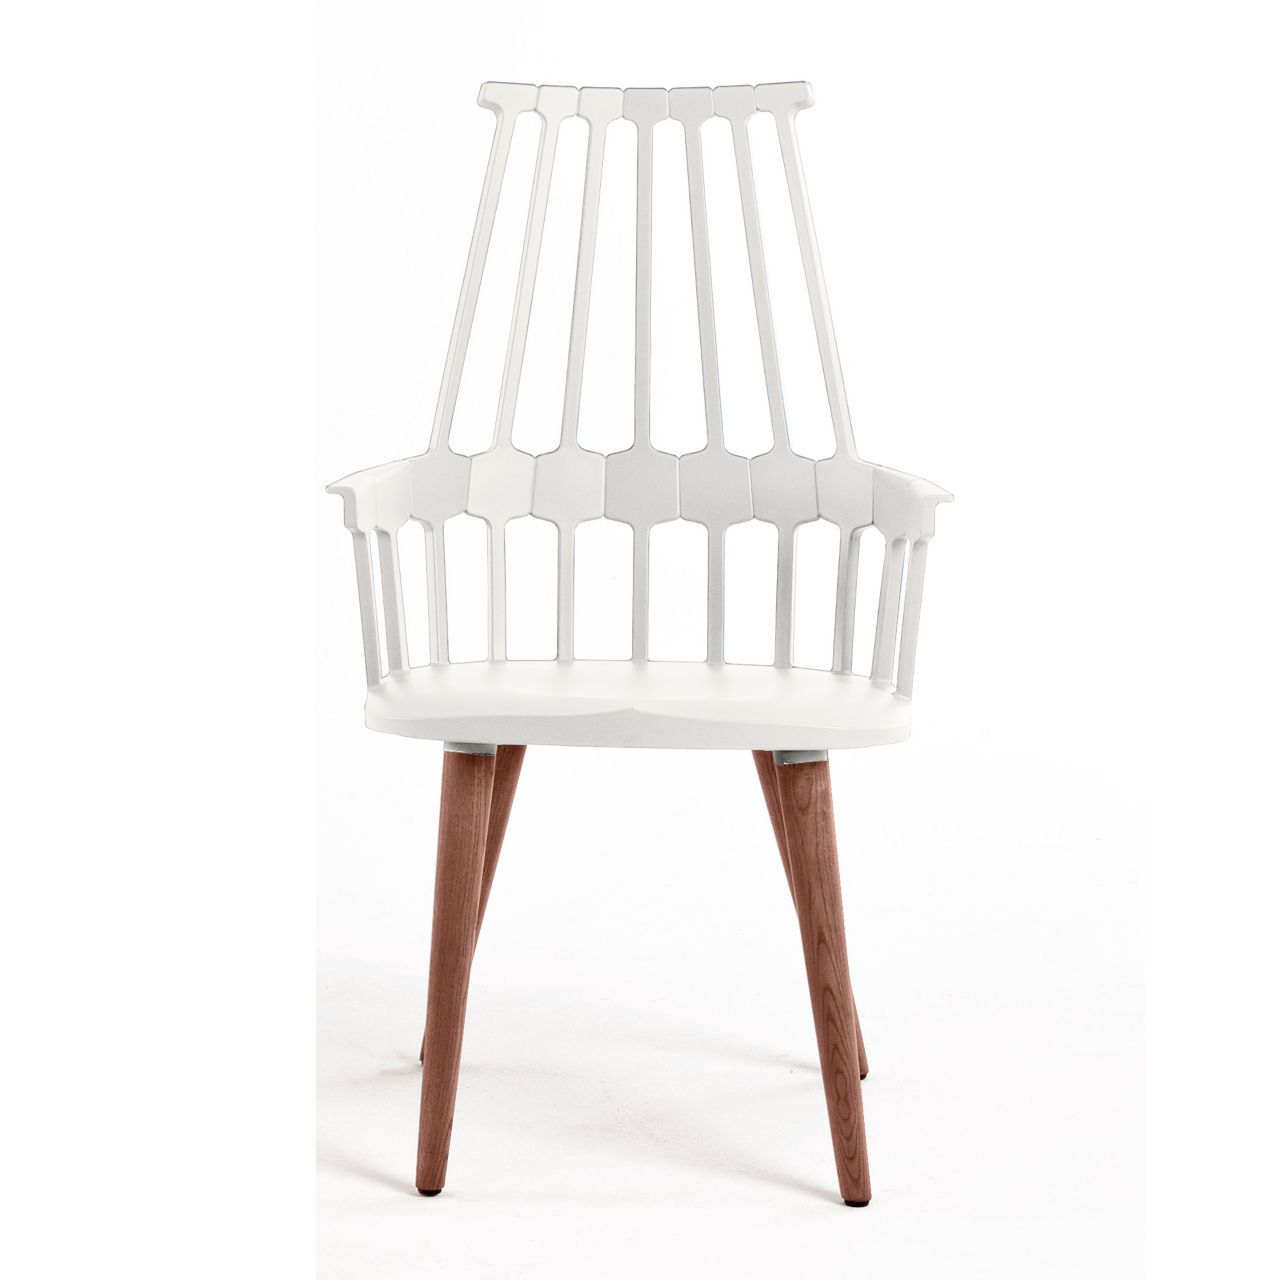 Comback Chair with 4 Leg Base in White by Kartell